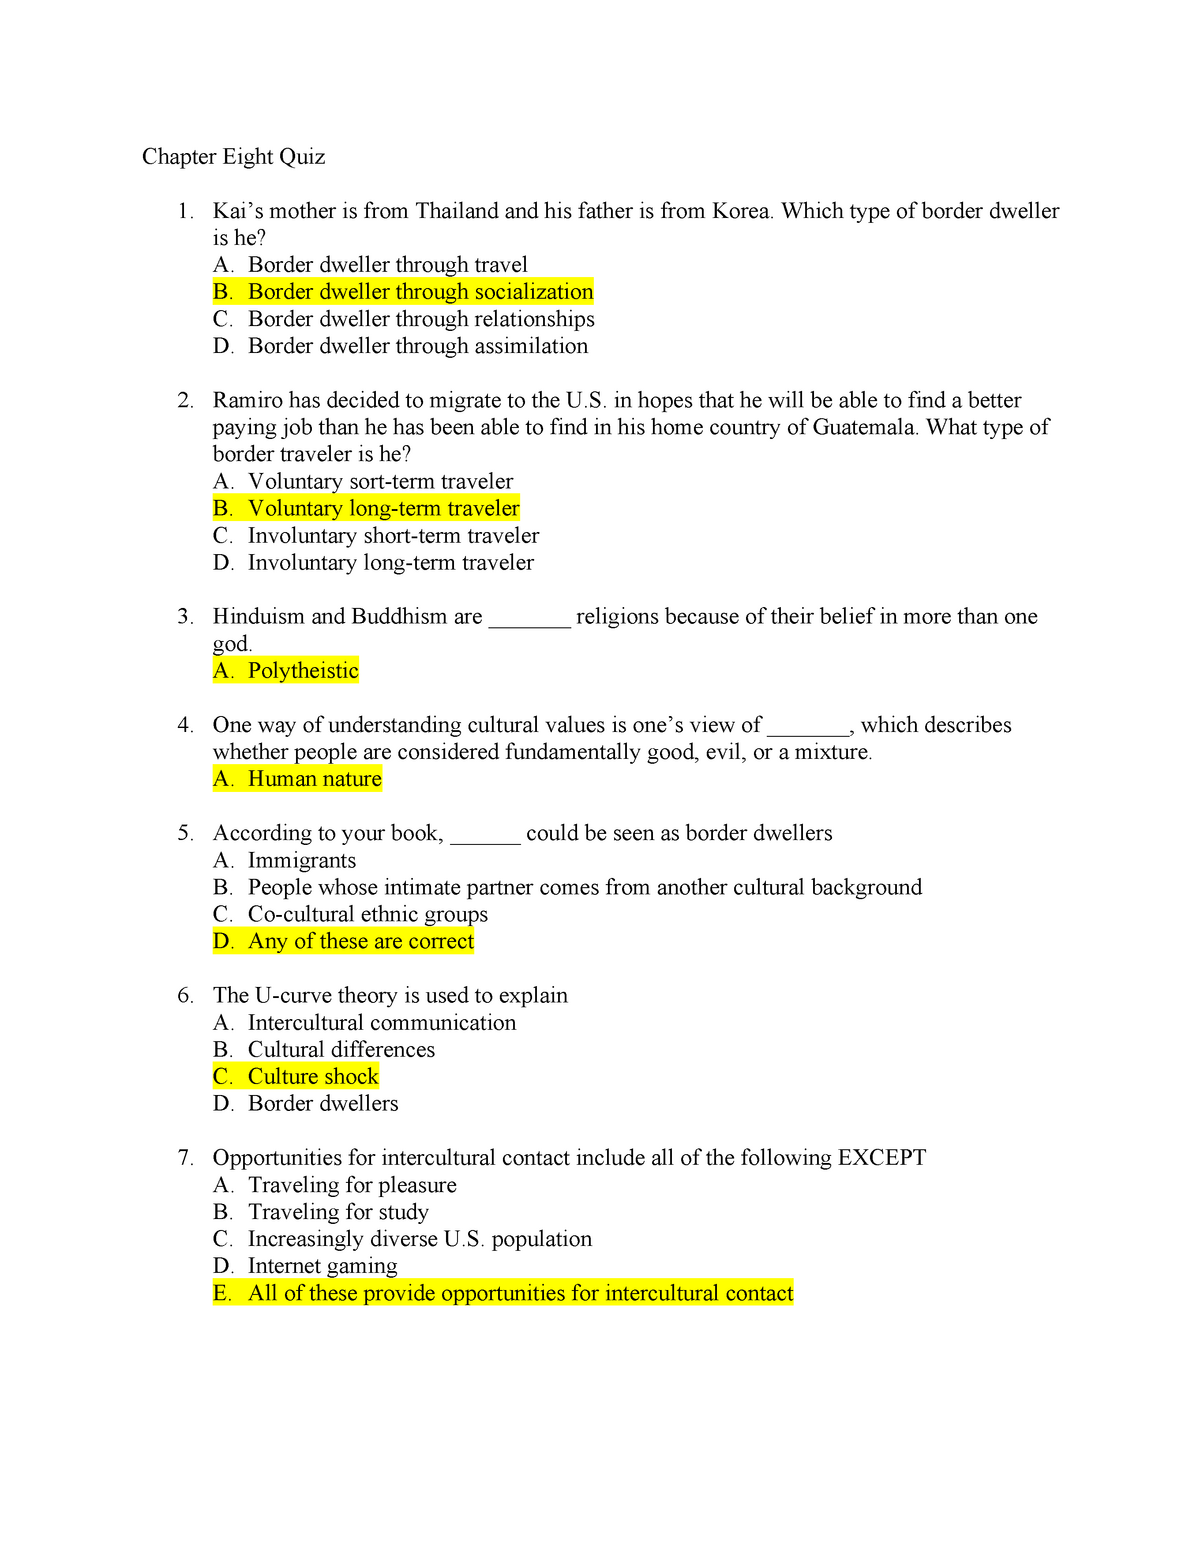 Chapter Eight Quiz - Futrell - COMM 201: Intro To Communication